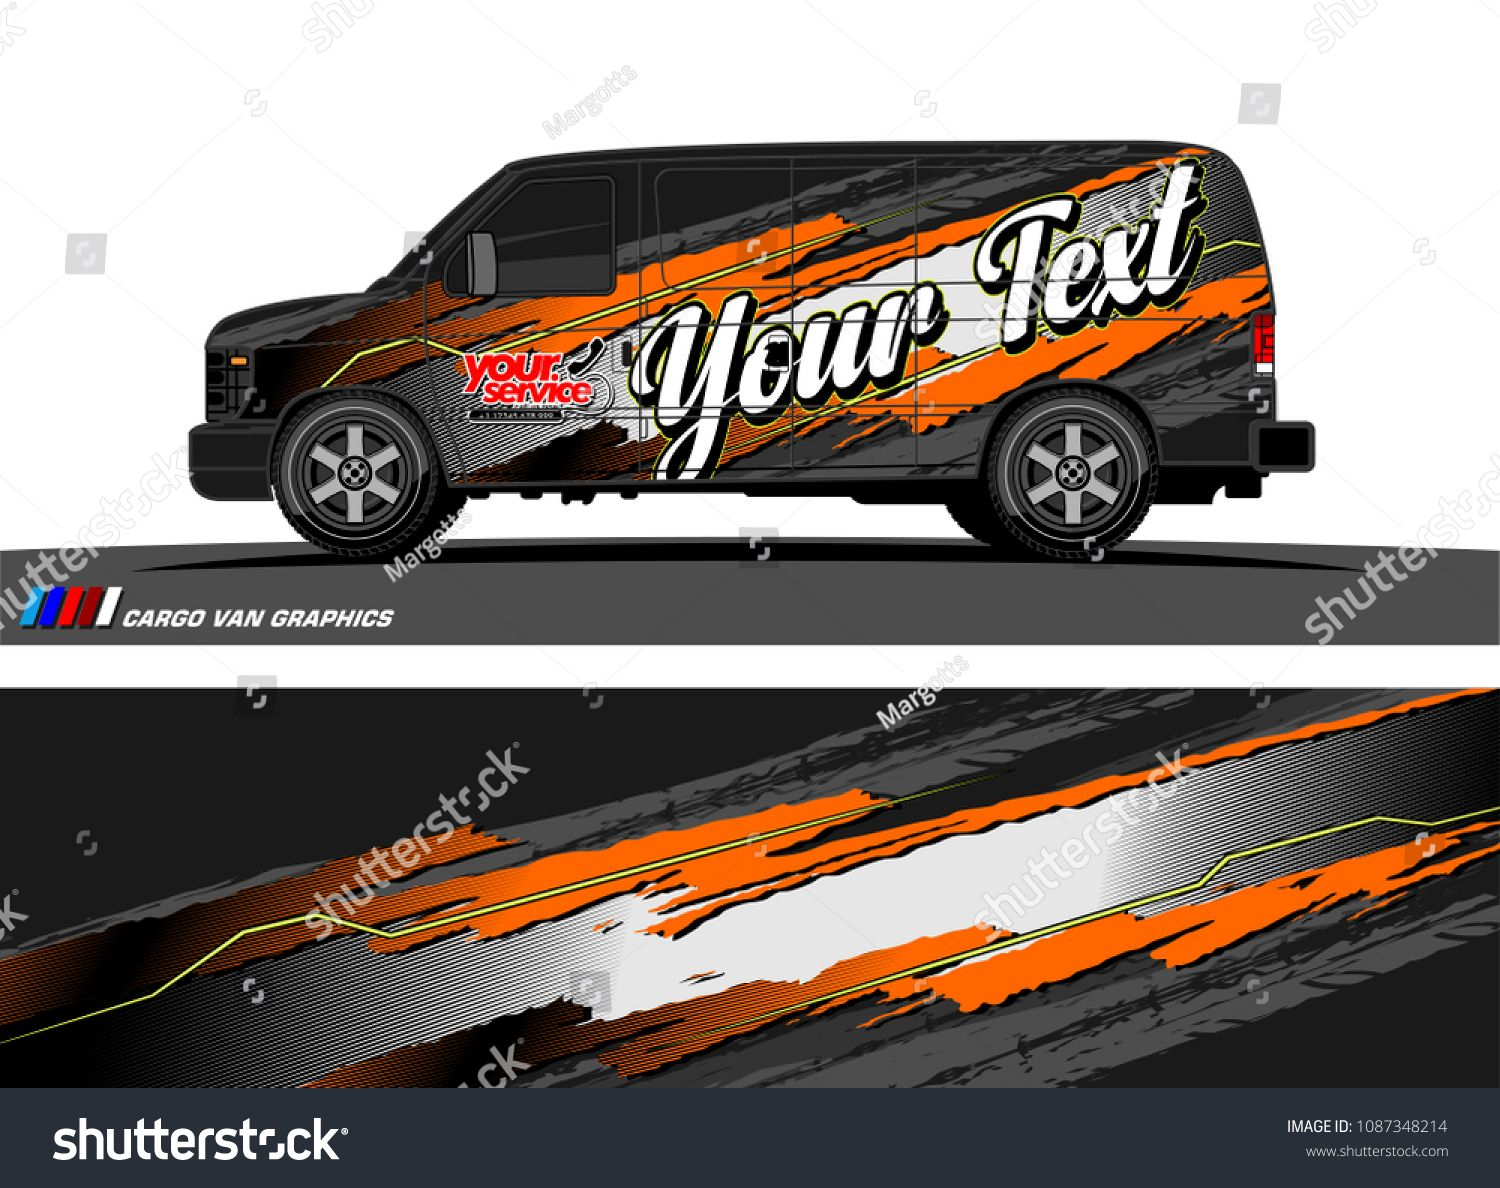 car wrap design vector  abstract splatter with grunge background for vehicle branding